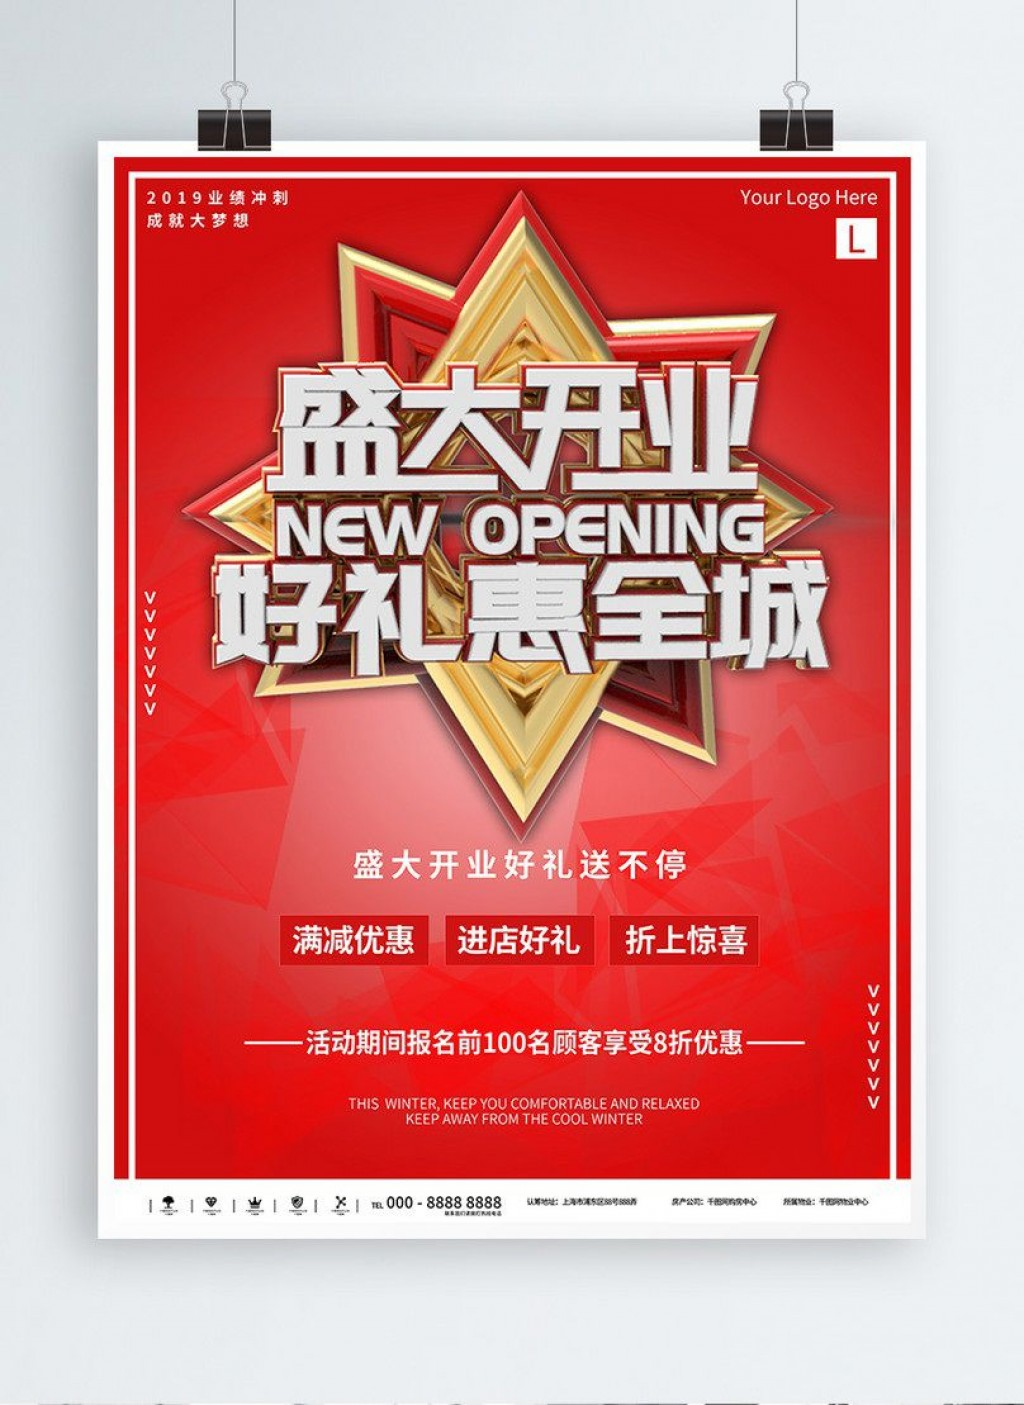 005 Surprising Grand Opening Flyer Template Image  Free Psd BusinesLarge